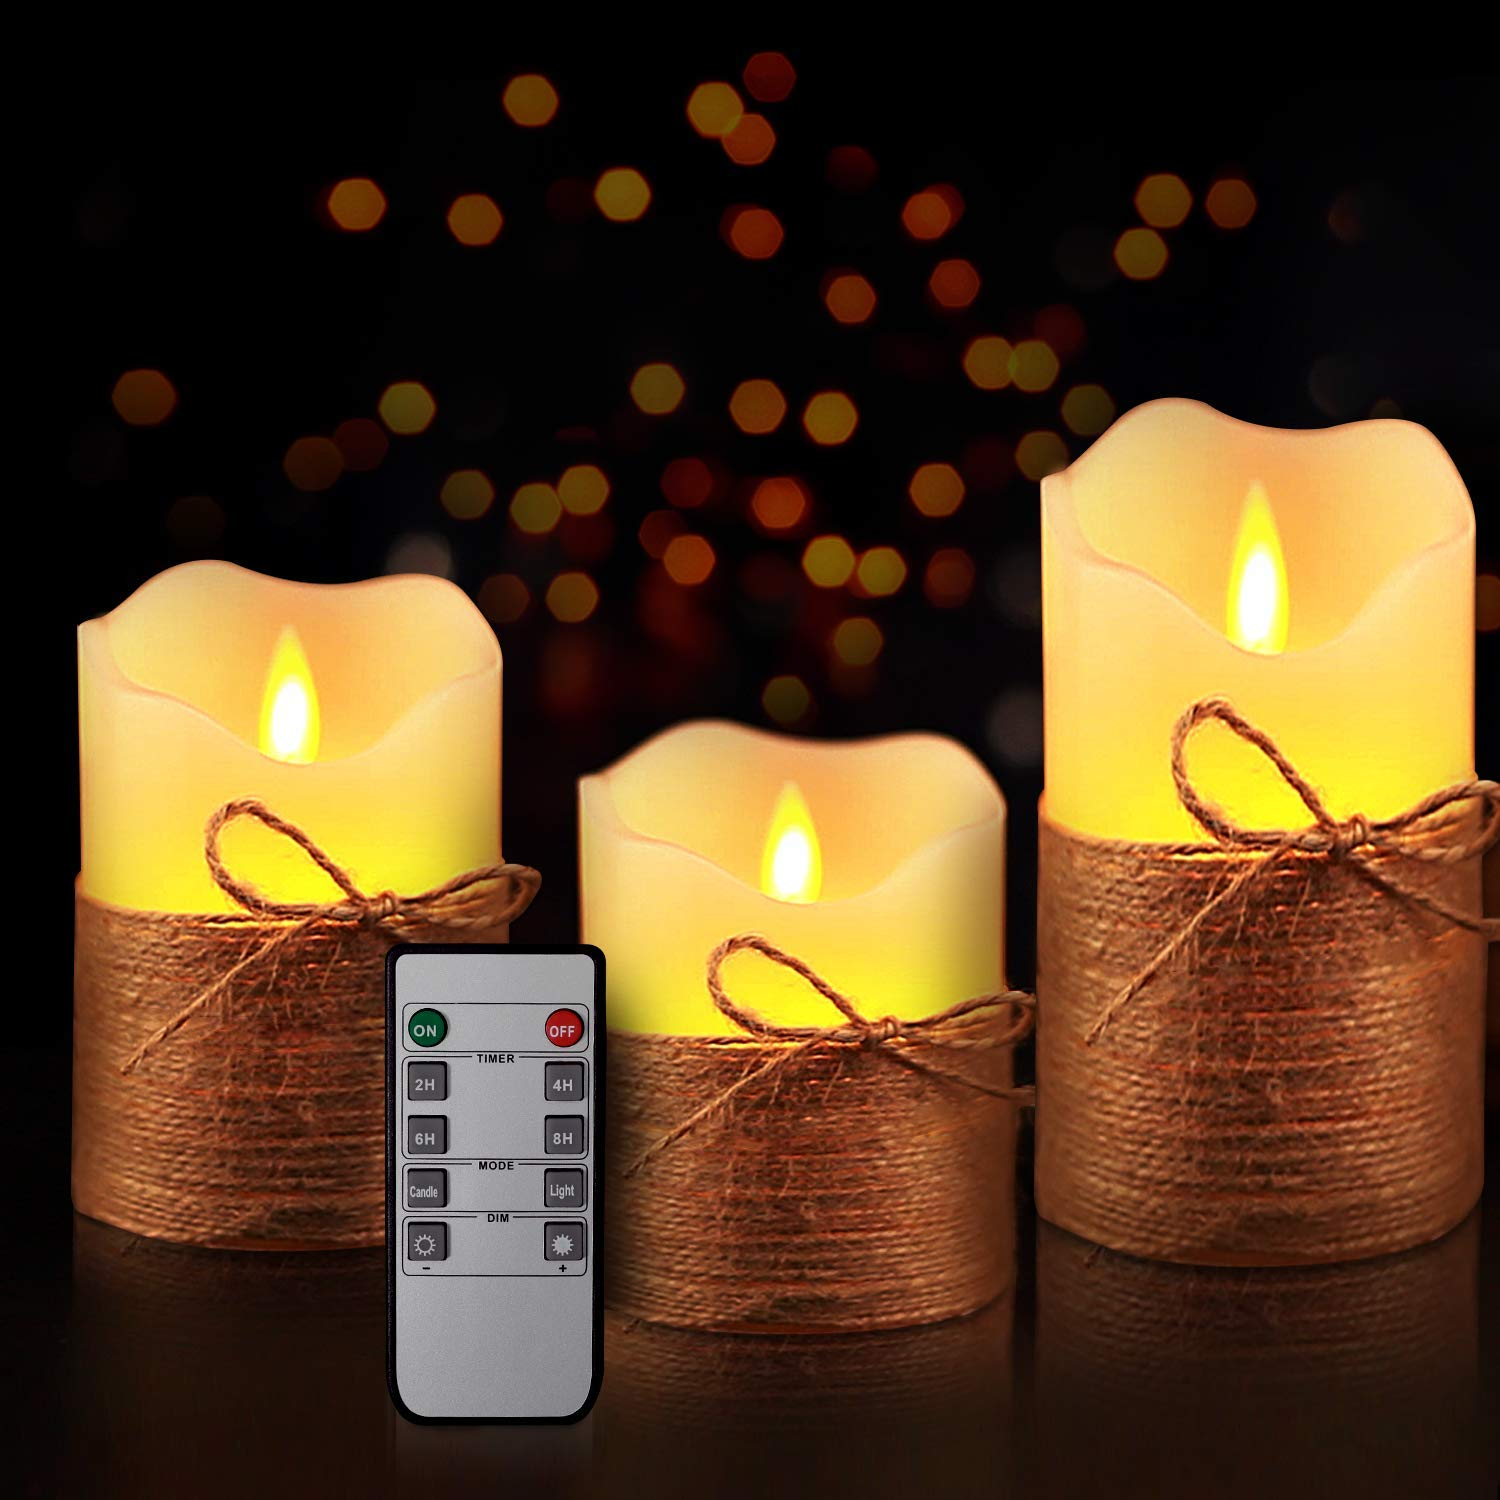 Yinuo Mirror Flameless Candles, LED Battery Operated Ivory Pillar Candles Real Wax Flickering Moving Wick Electric Candle Sets with Hemp Rope Remote and Cycling 24 Hours Timer, 4'' 5'' 6'' Pack of 3